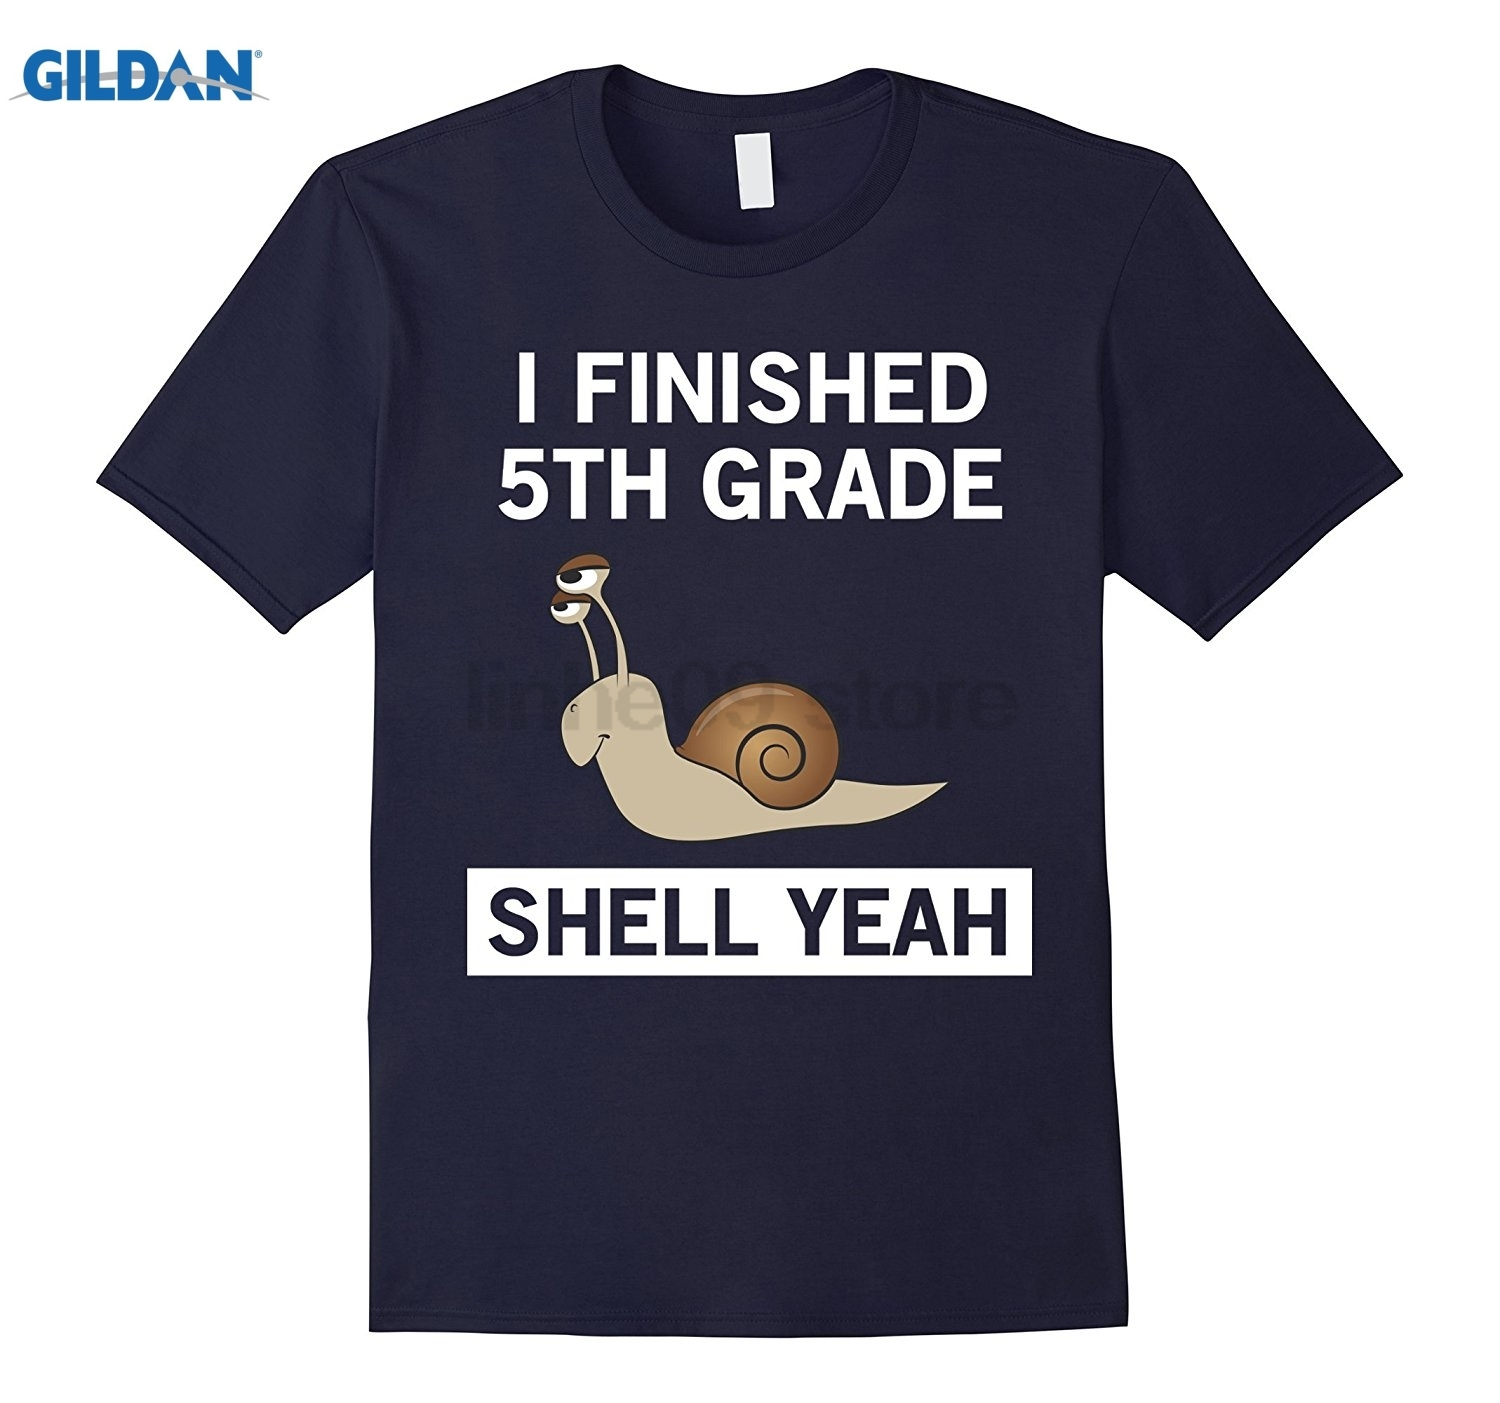 GILDAN Funny I Finished 5th Grade Shell Yeah Graduation T-Shirt Womens T-shirt